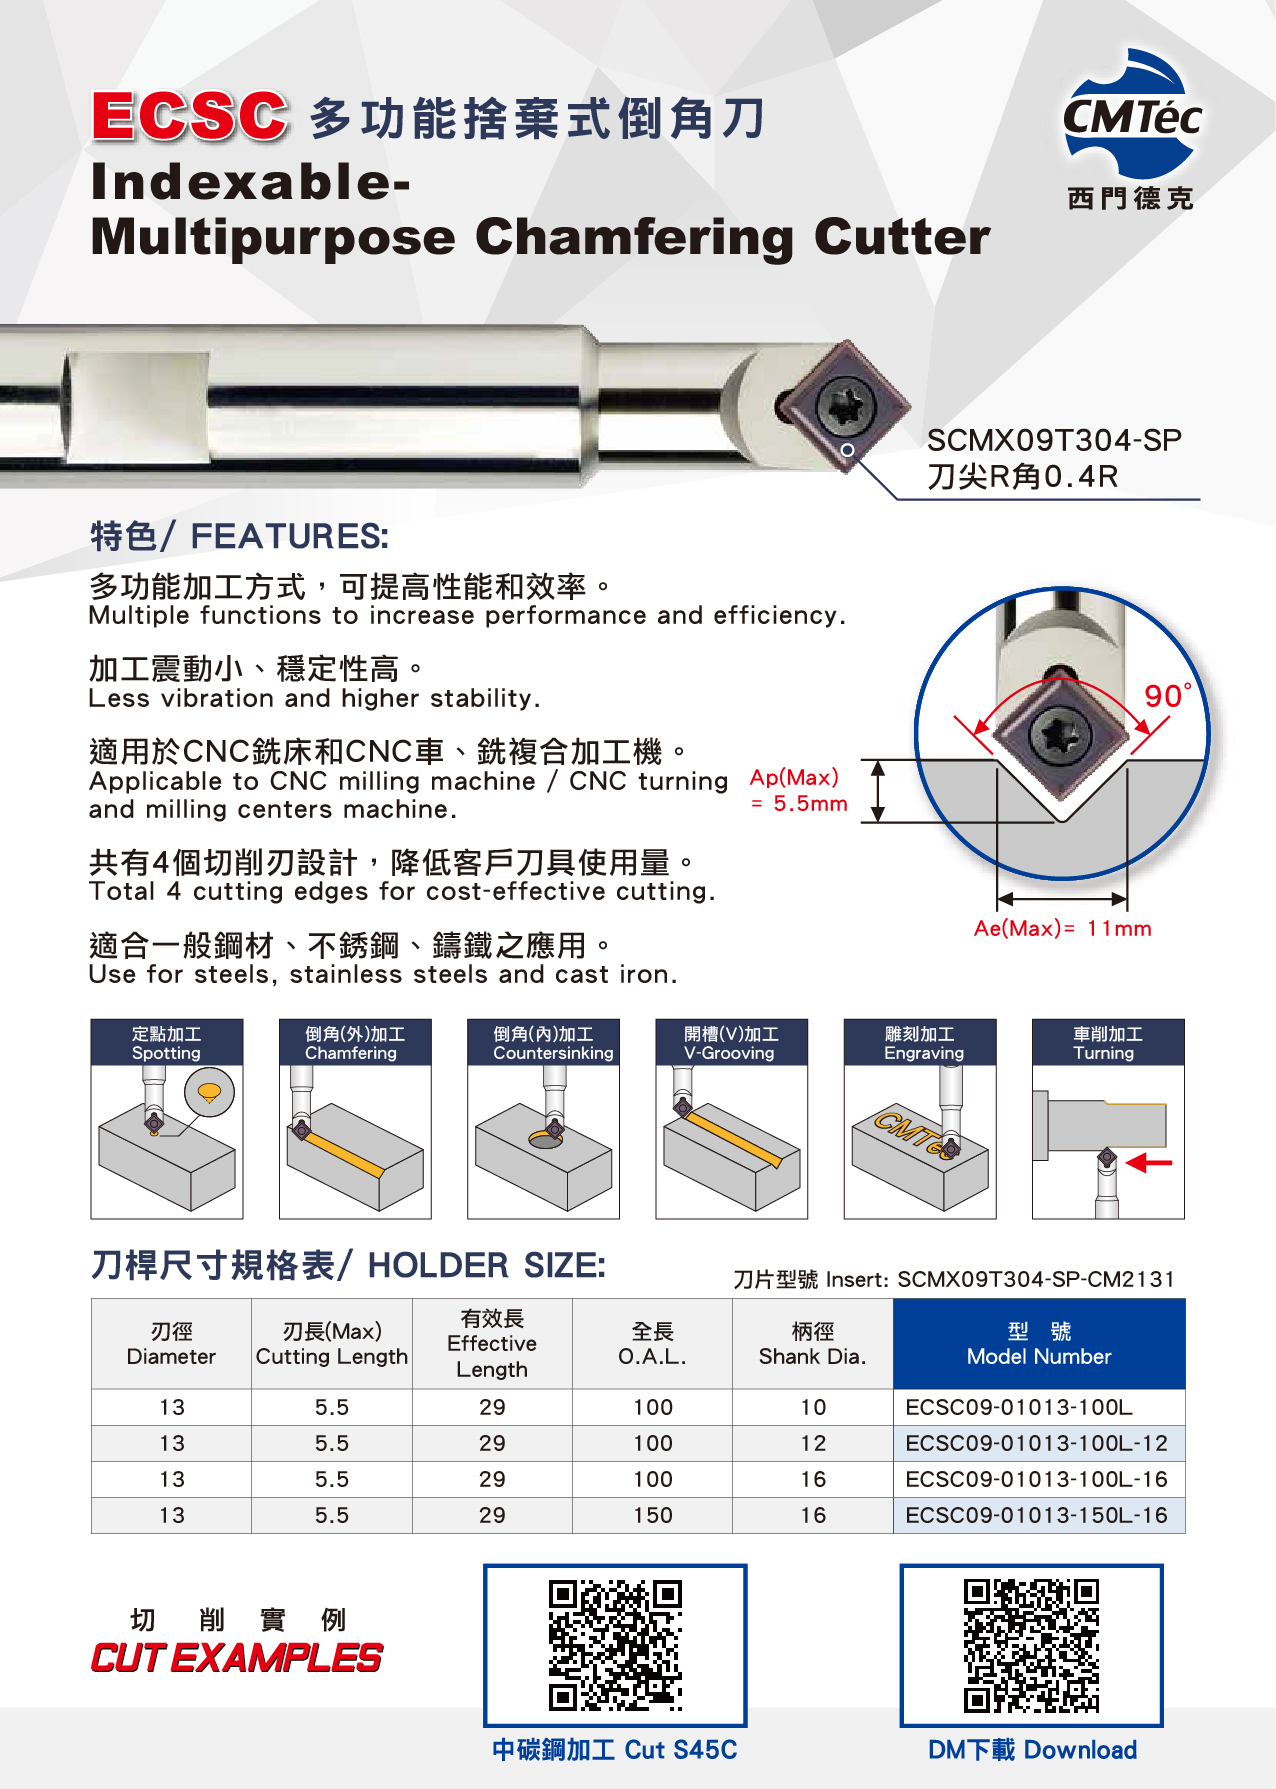 ECSC- Indexable- Multipurpose Chamfering Cutter